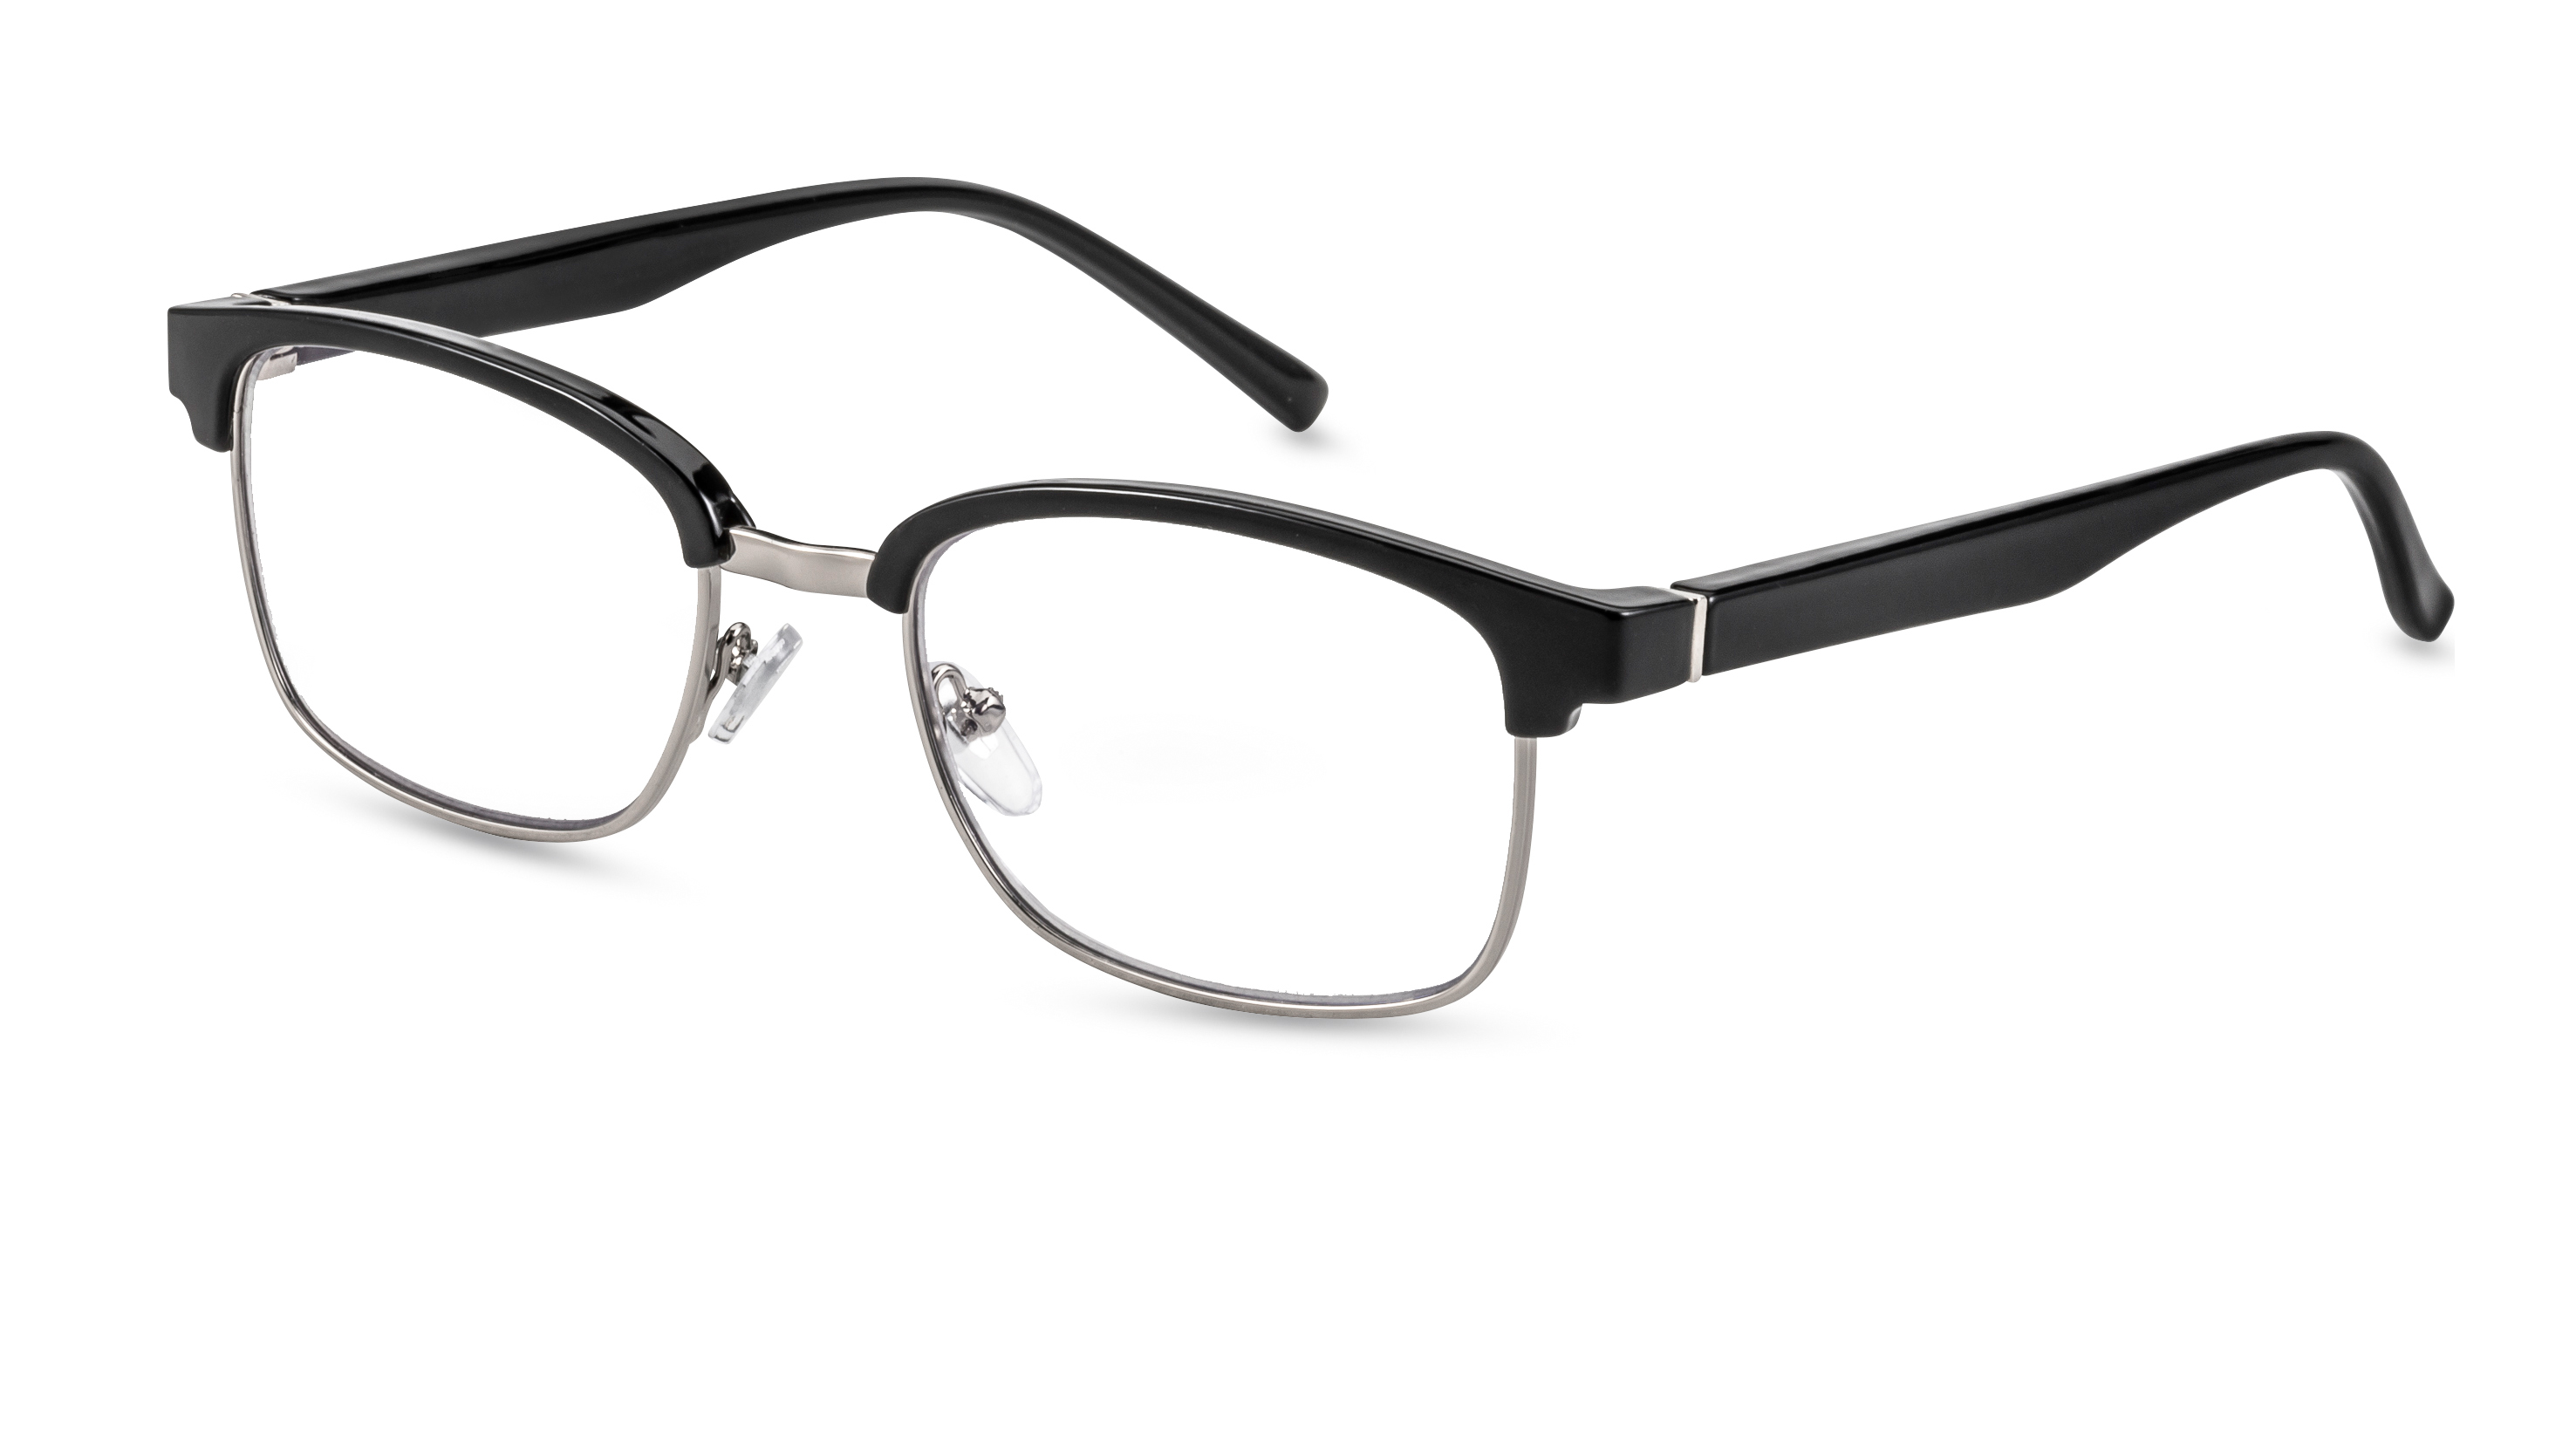 Main view, reading glasses palermo black-silver